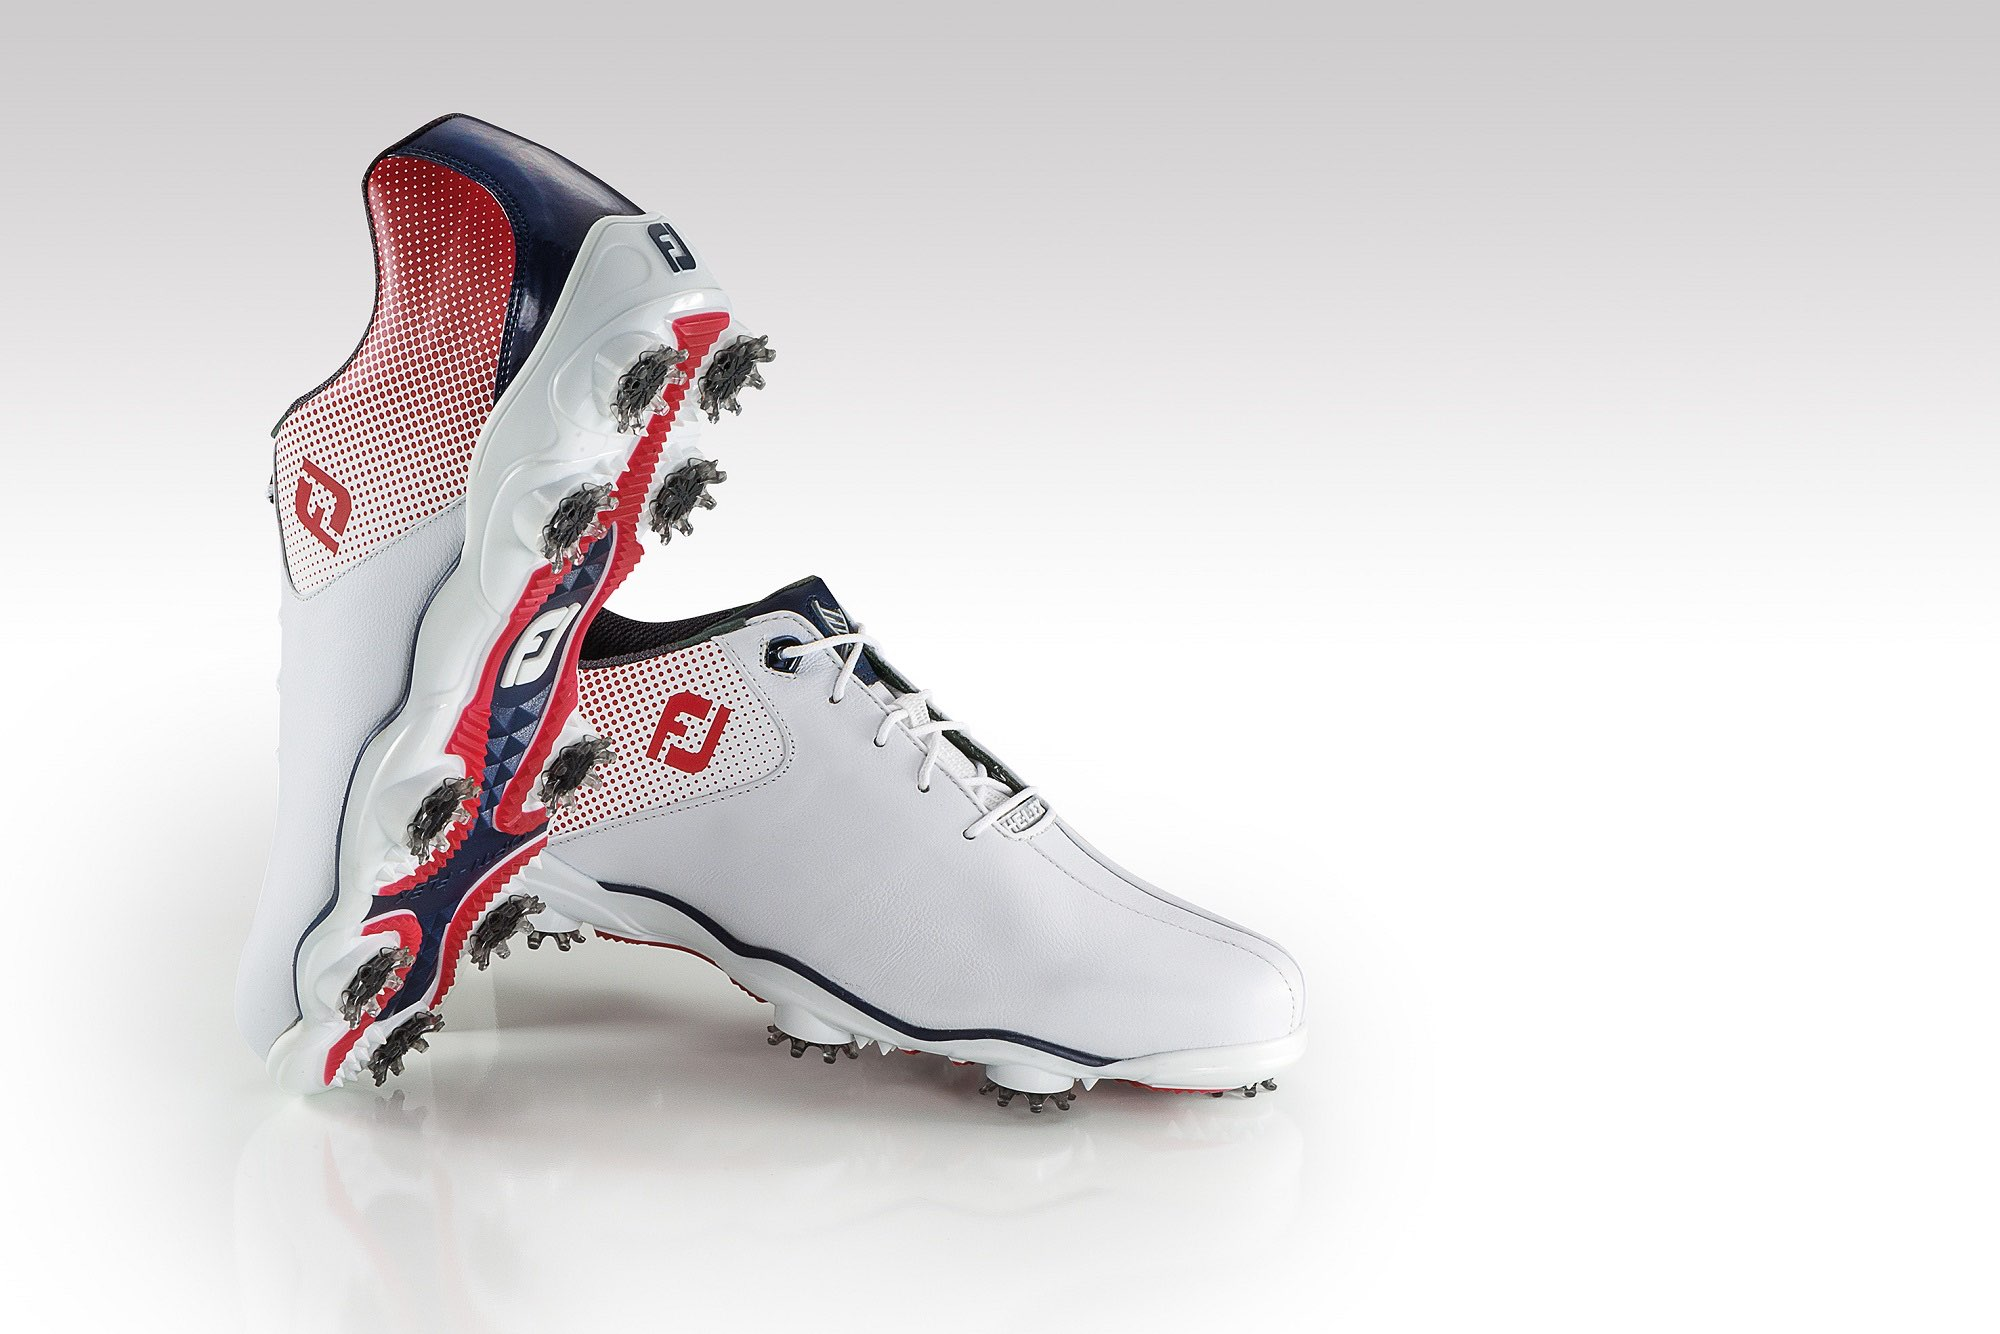 Footjoy announce new D.N.A. Helix shoes